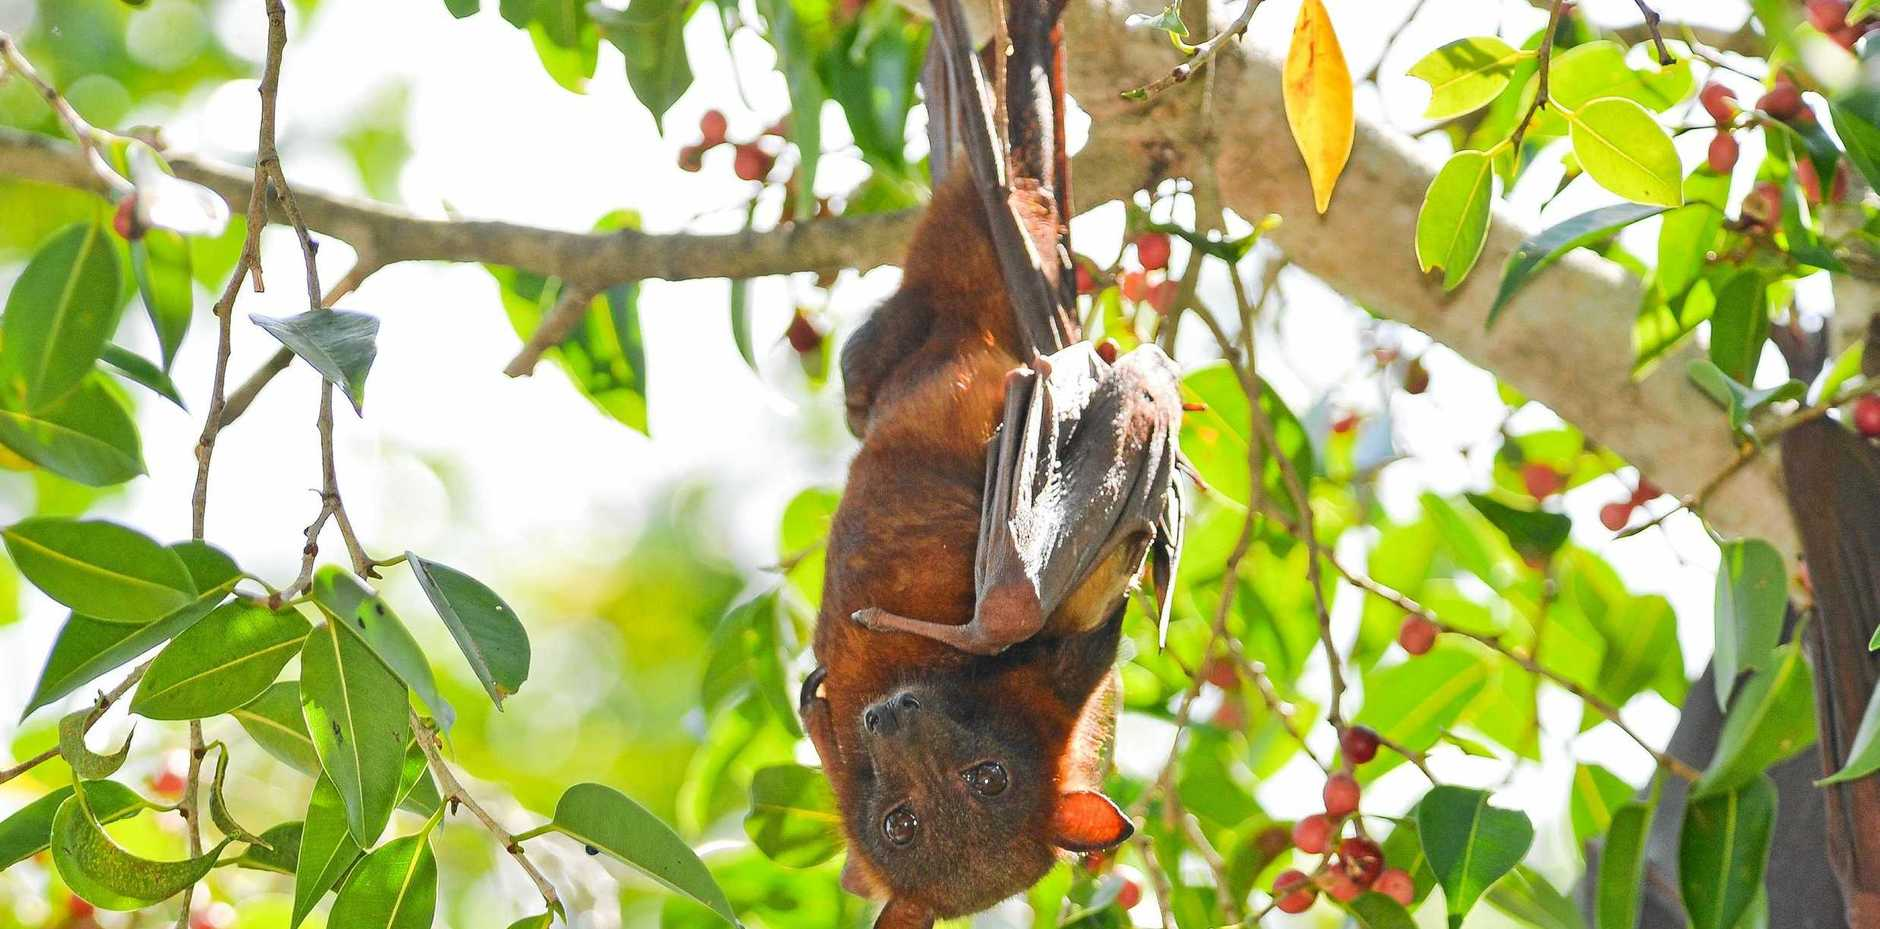 DON'T TOUCH: North Coast residents are reminded to avoid handling or touching injured or dead flying foxes or microbats.